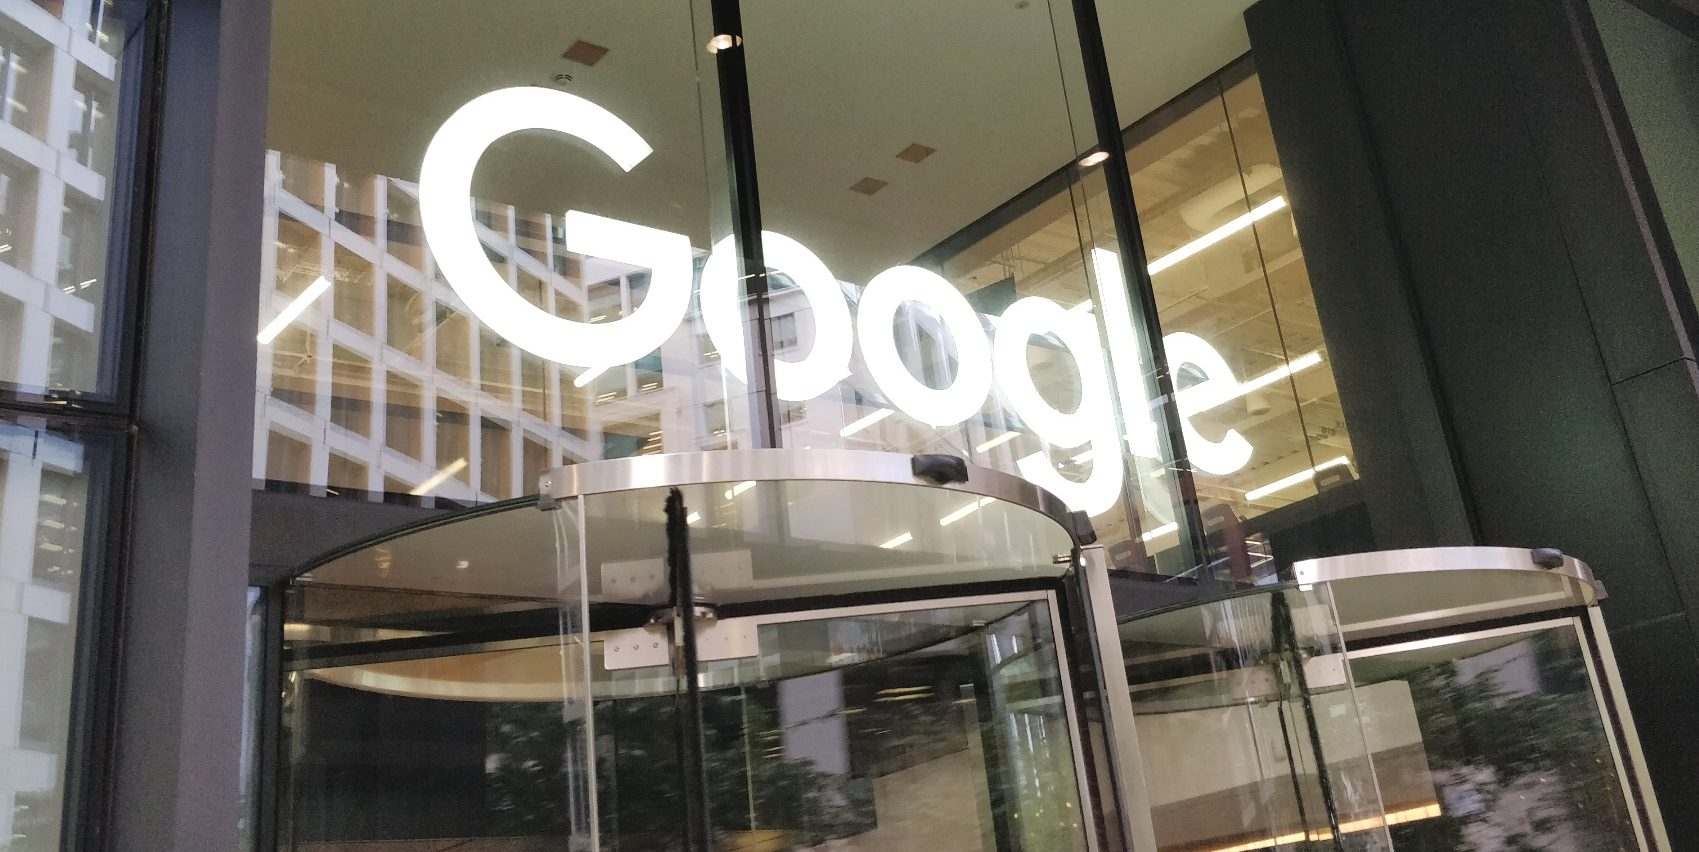 Google has completed over 100 ethical reviews of AI